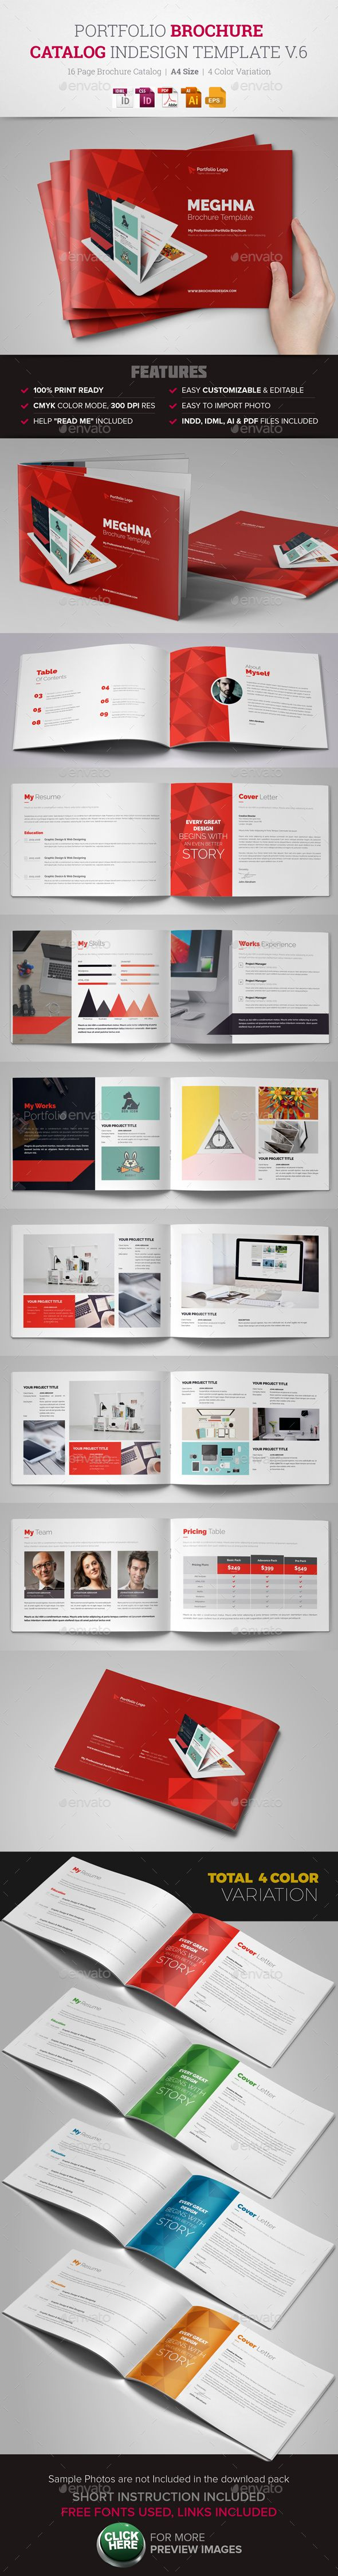 Portfolio Brochure InDesign v6 | Diseño editorial, Composición y ...